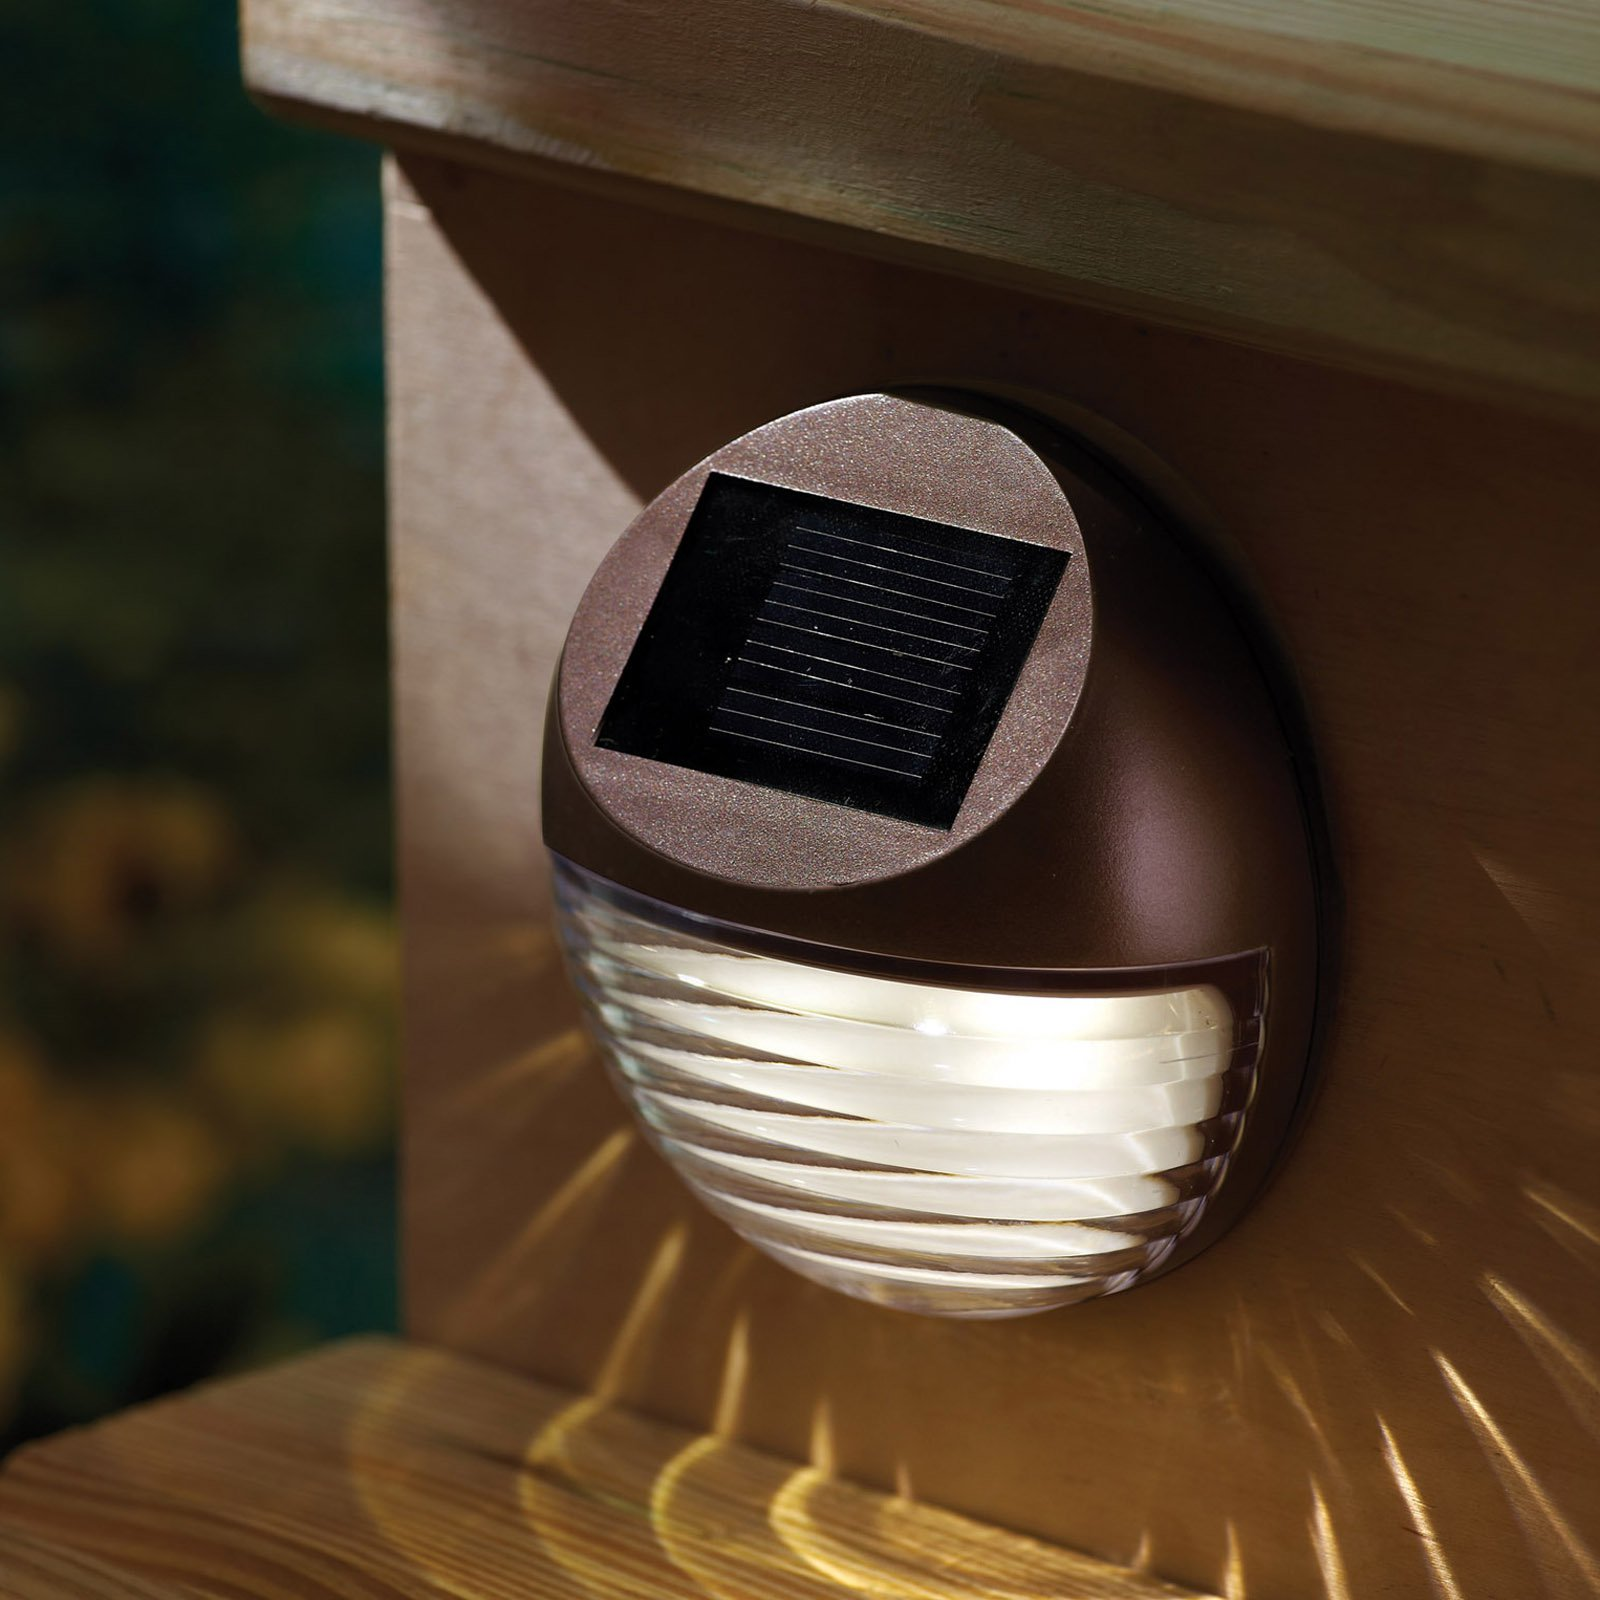 Captivating MOONRAYS 95027 LED Mini Deck Light,Outdoor,Solar G9972033   Walmart.com Part 27